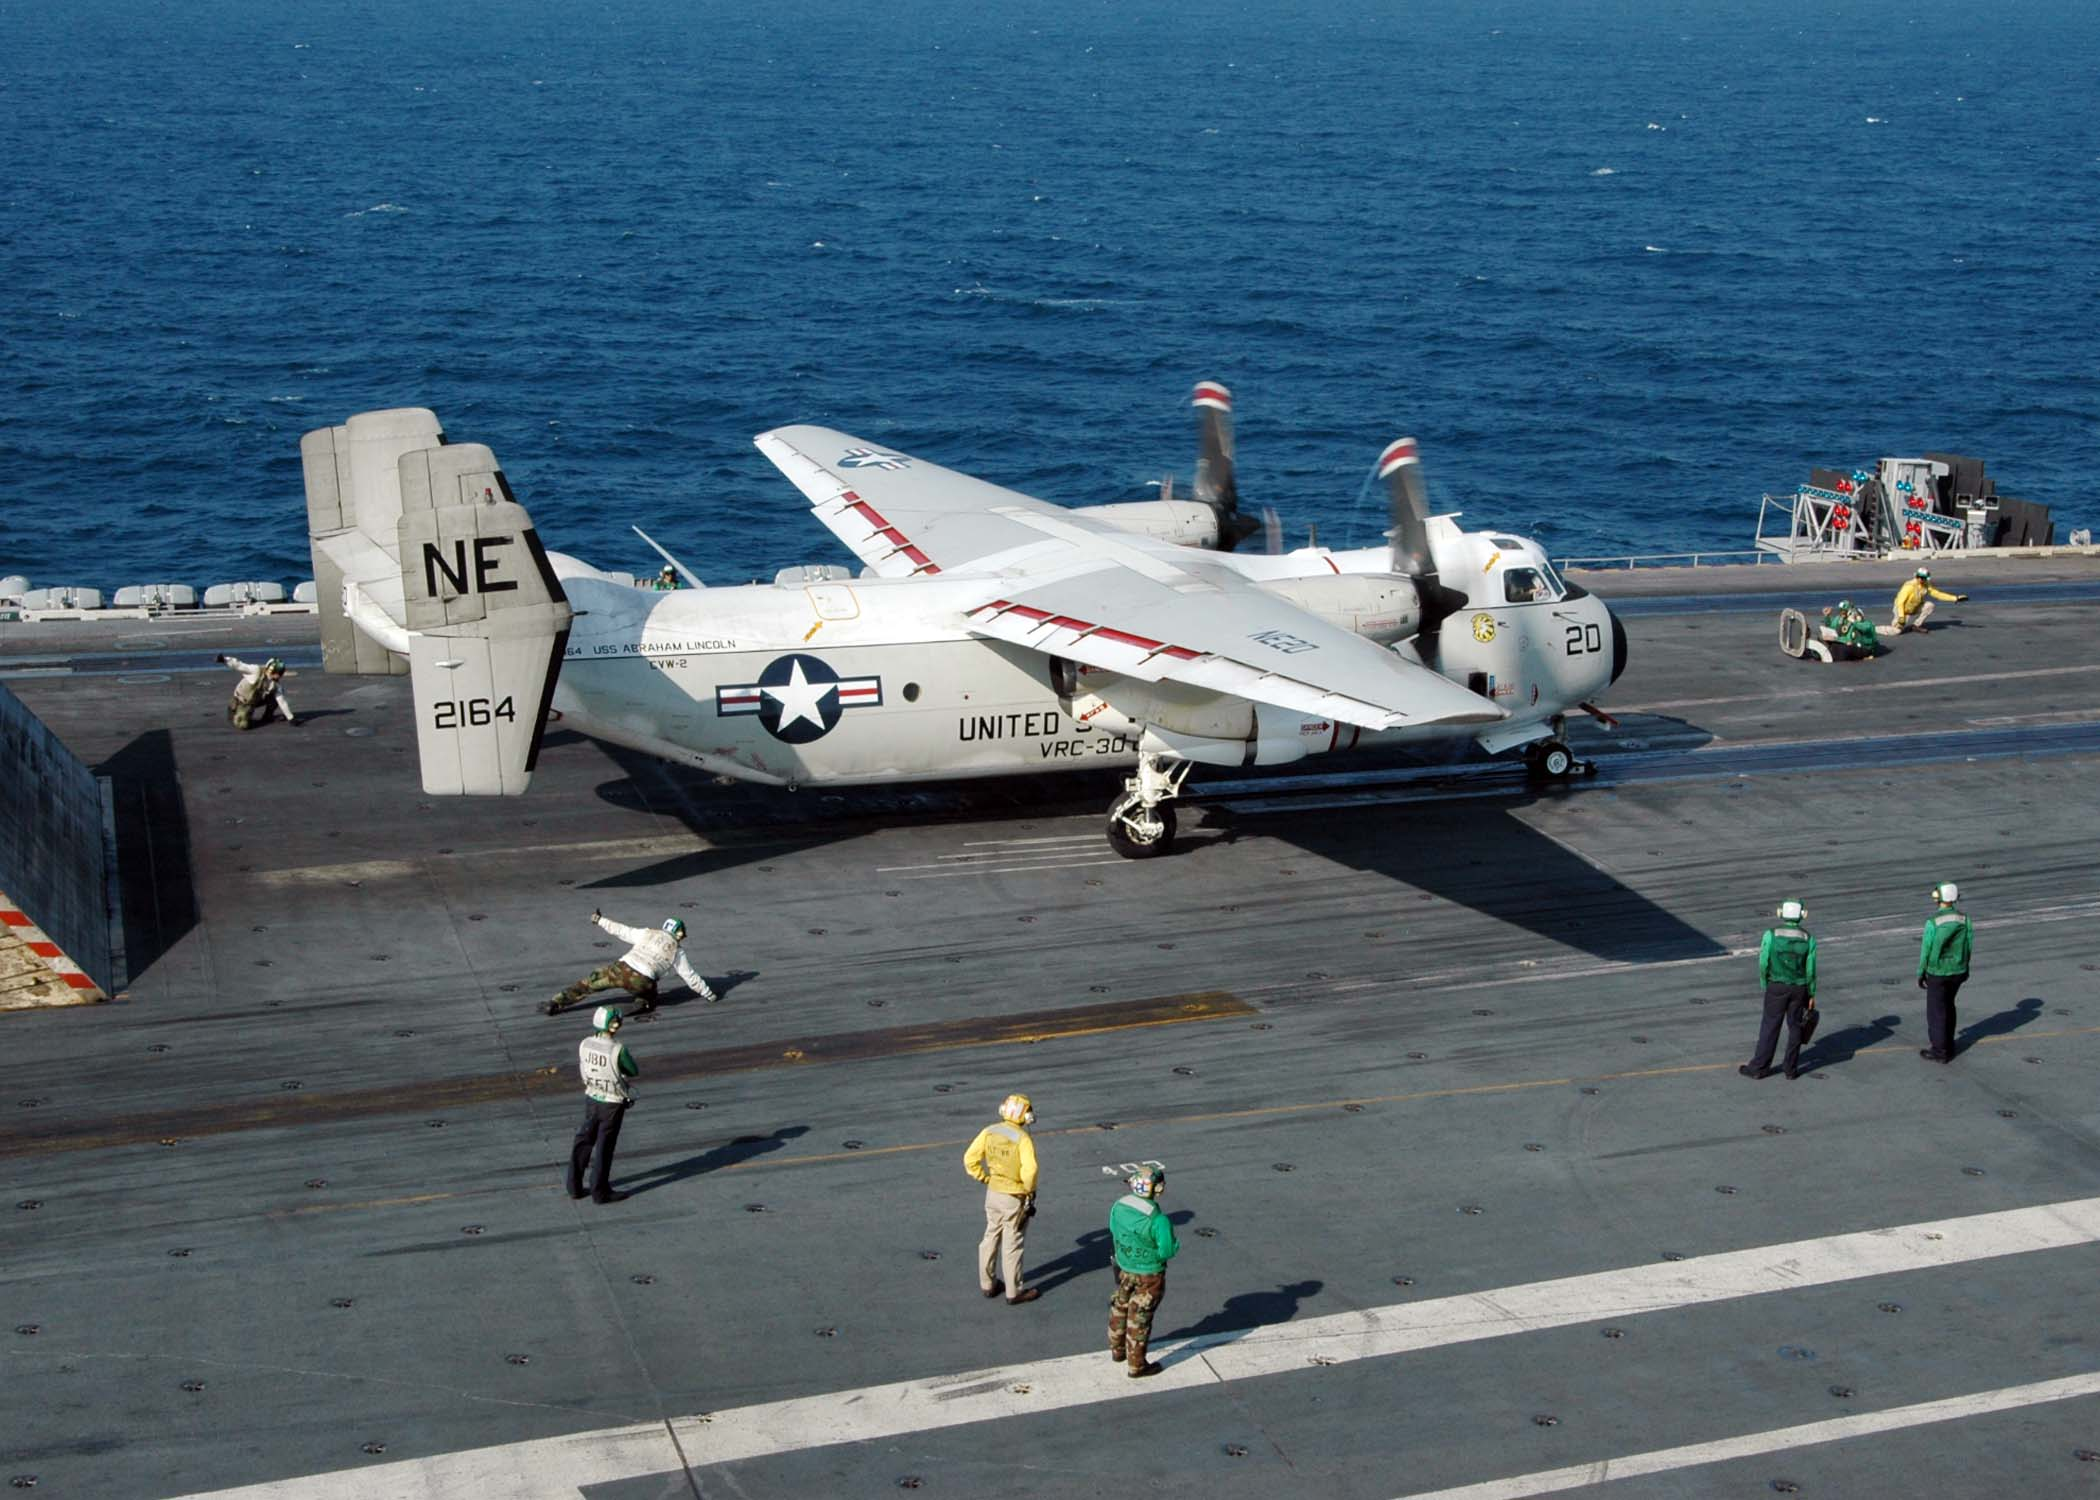 C-2A Greyhound - Indian Ocean (Jan. 20, 2005) - A C-2A Greyhound, assigned to the ?Providers? of Fleet Logistics Support Squadron Three Zero (VRC-30), prepares to launch off the flight deck aboard USS Abraham Lincoln (CVN 72). Aircraft assigned to Carrier Air Wing Two (CVW-2) and Sailors from the Abraham Lincoln are supporting Operation Unified Assistance, the humanitarian operation effort in the wake of the Tsunami that struck South East Asia. The Abraham Carrier Strike group is currently operating in the Indian Ocean off the waters of Indonesia and Thailand. U.S. Navy photo by Photographer